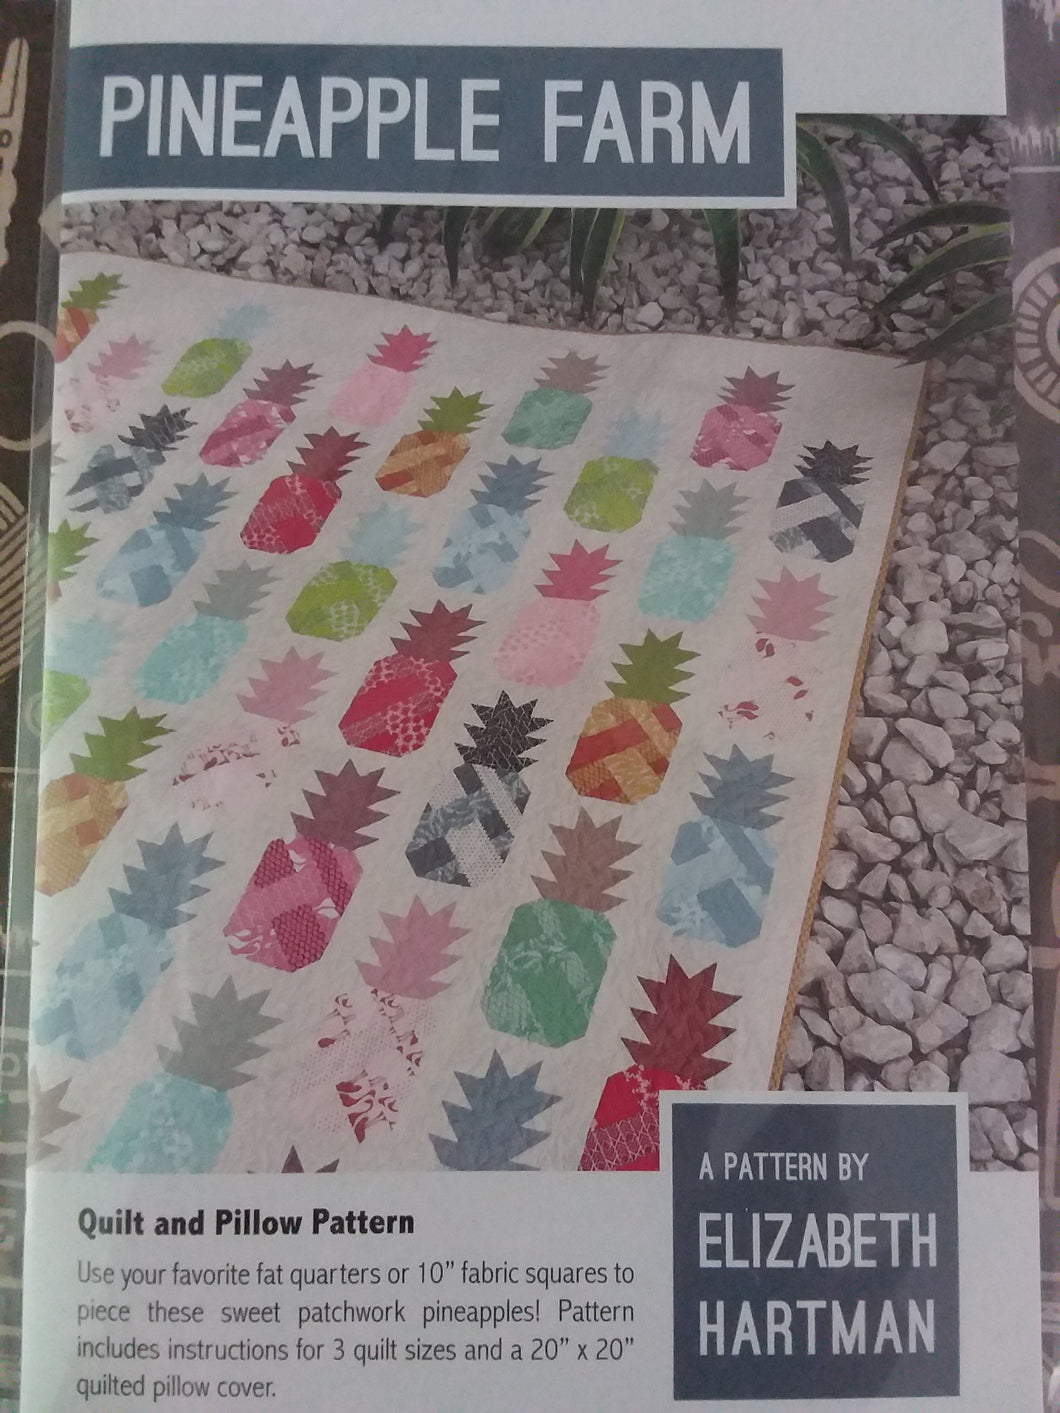 Pineapple farm a pattern by Elizabeth Hartman